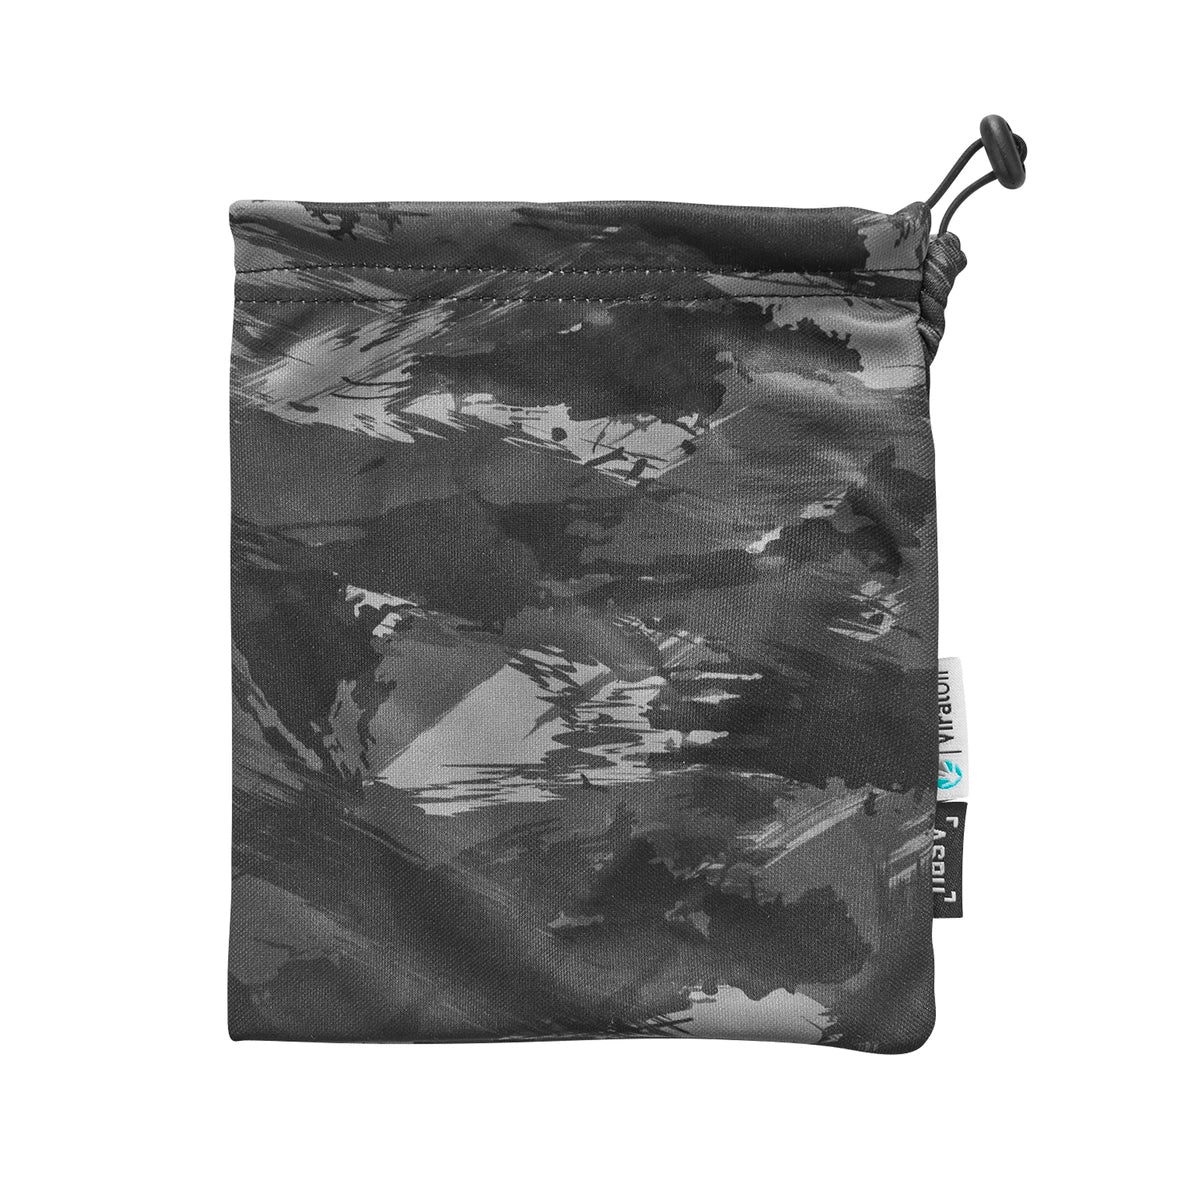 0383. ViralOff® Form-Fitting Face Mask (2 Pack with Bag) - Black Brushed Camo